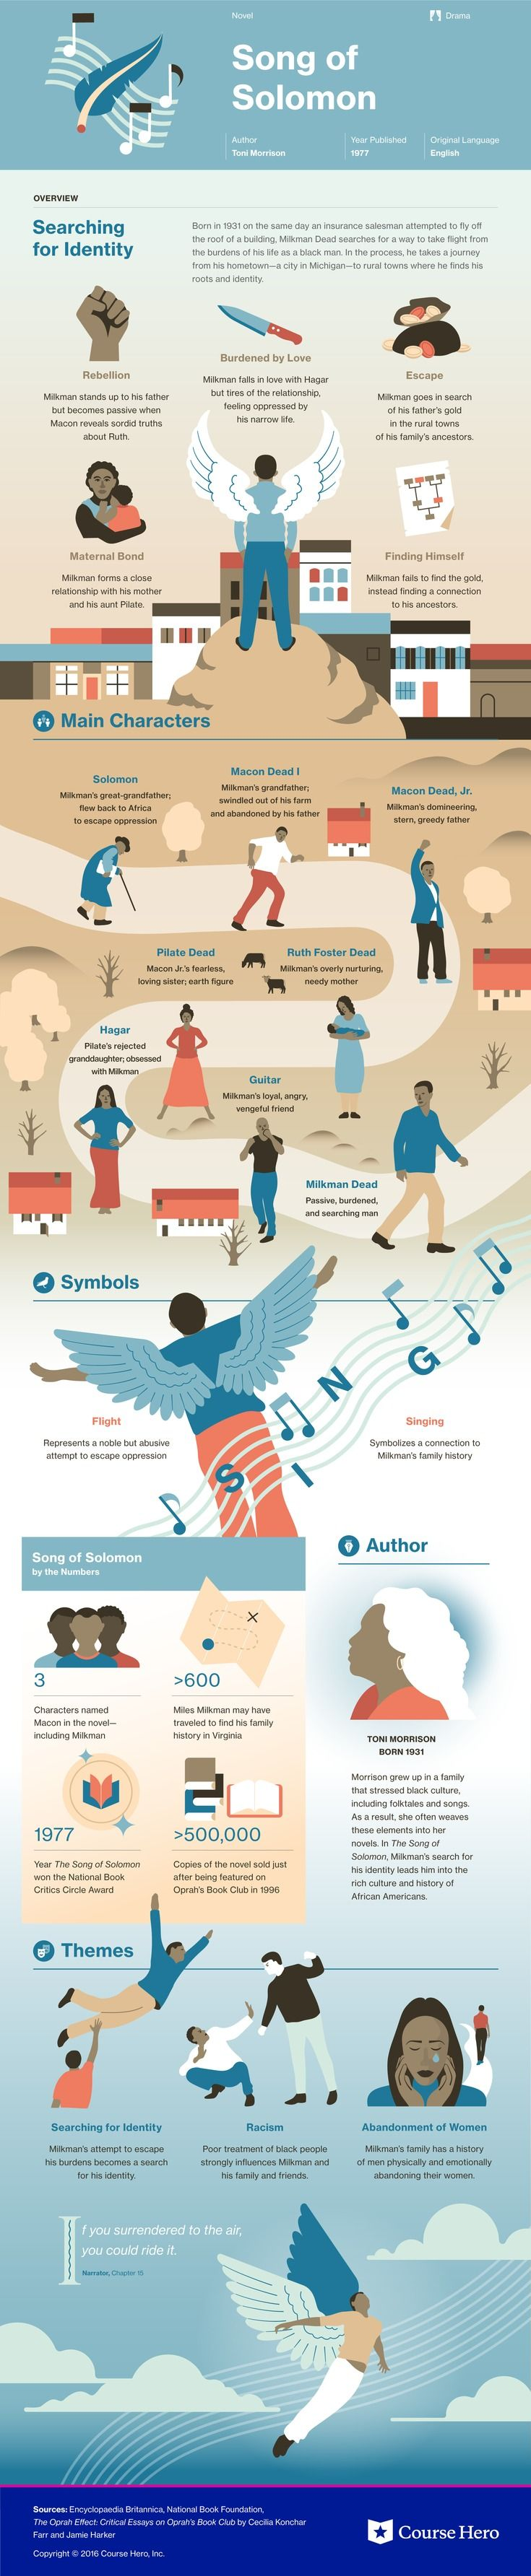 Song Of Solomon Infographic Infographic Pinterest Solomon